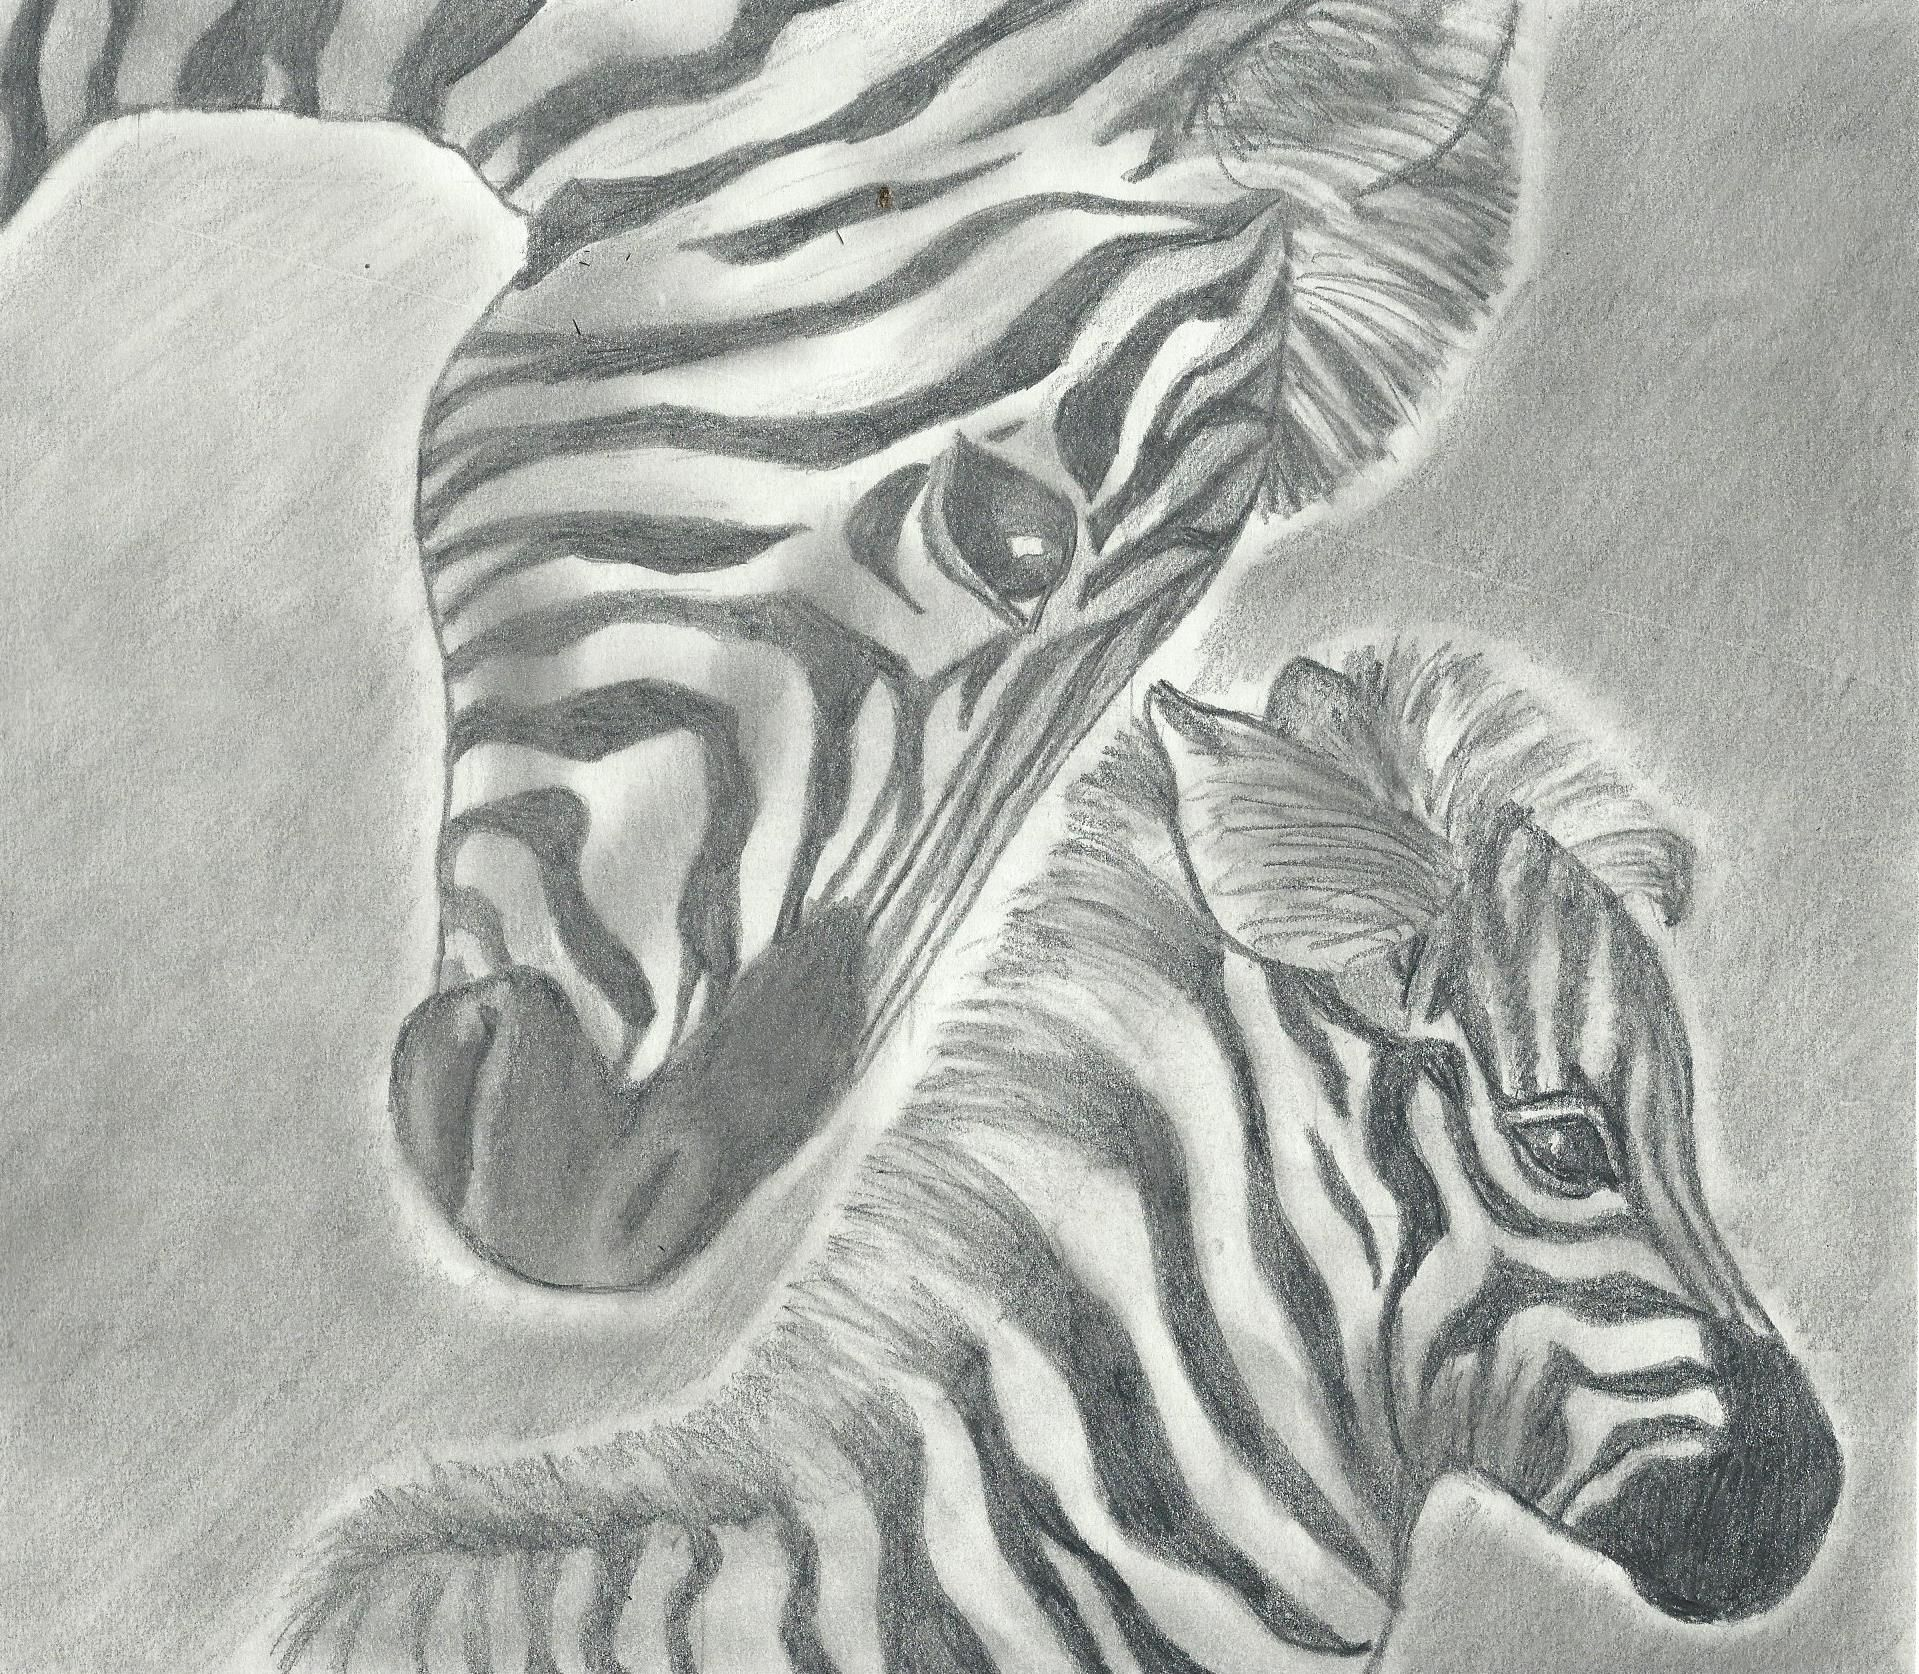 zebra pencil drawing - photo #12